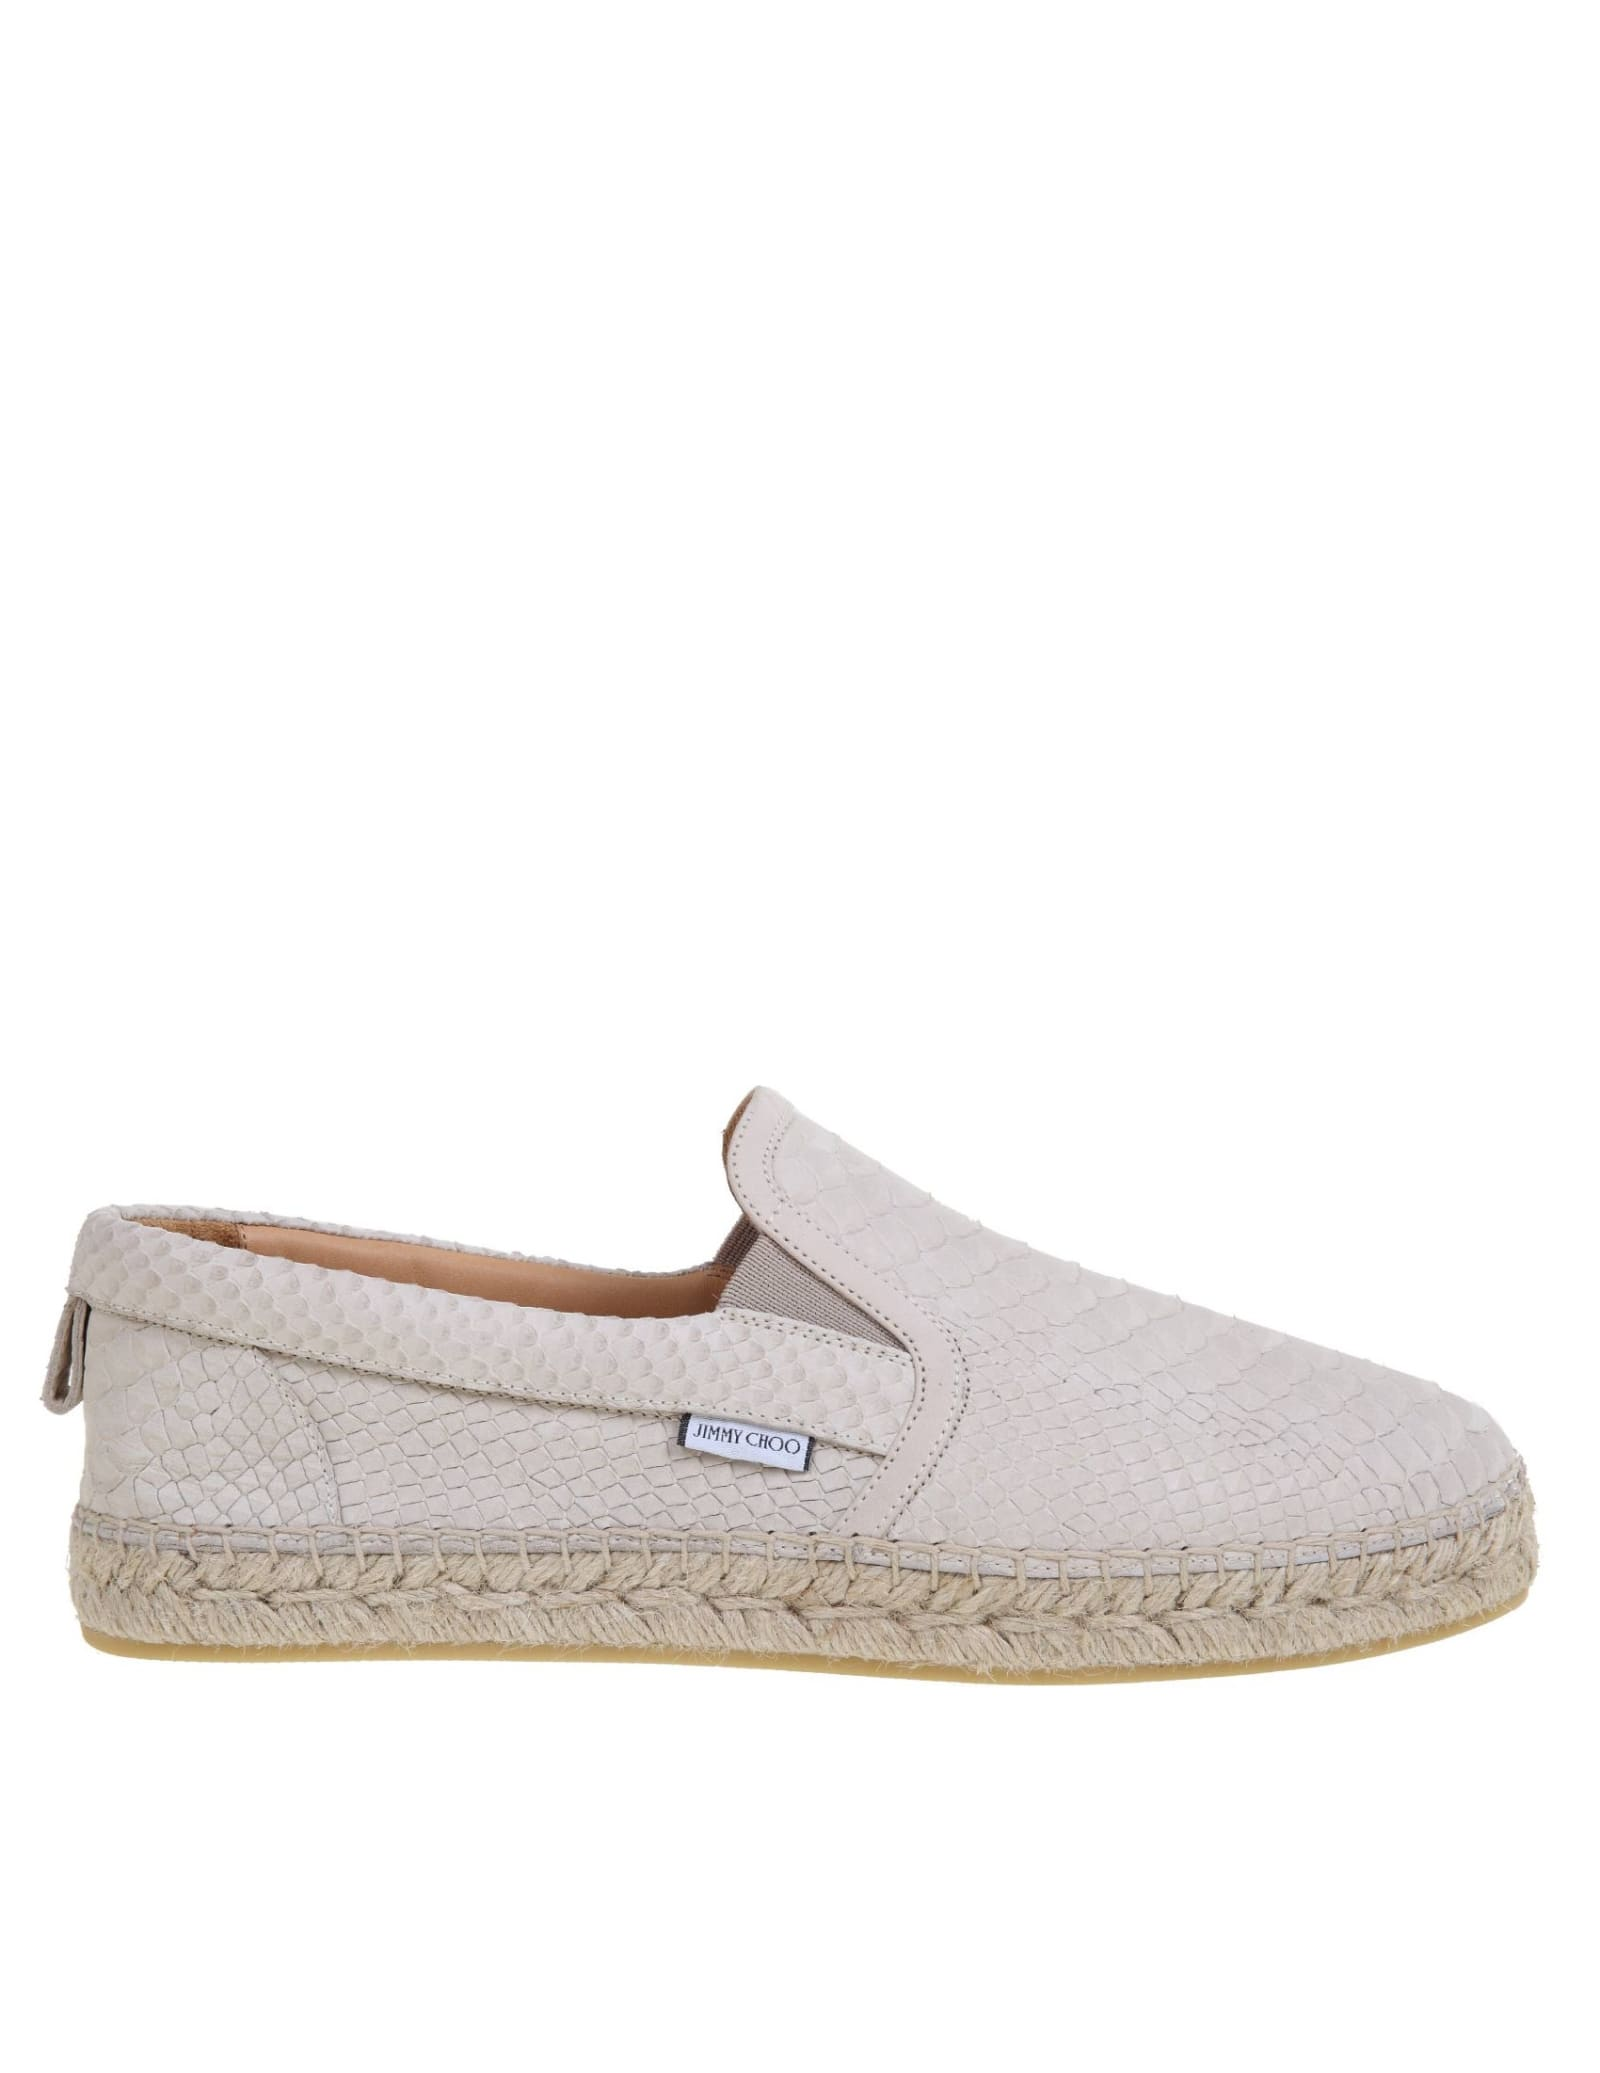 Jimmy Choo ESPADRILLAS IN PELLE COLORE BEIGE